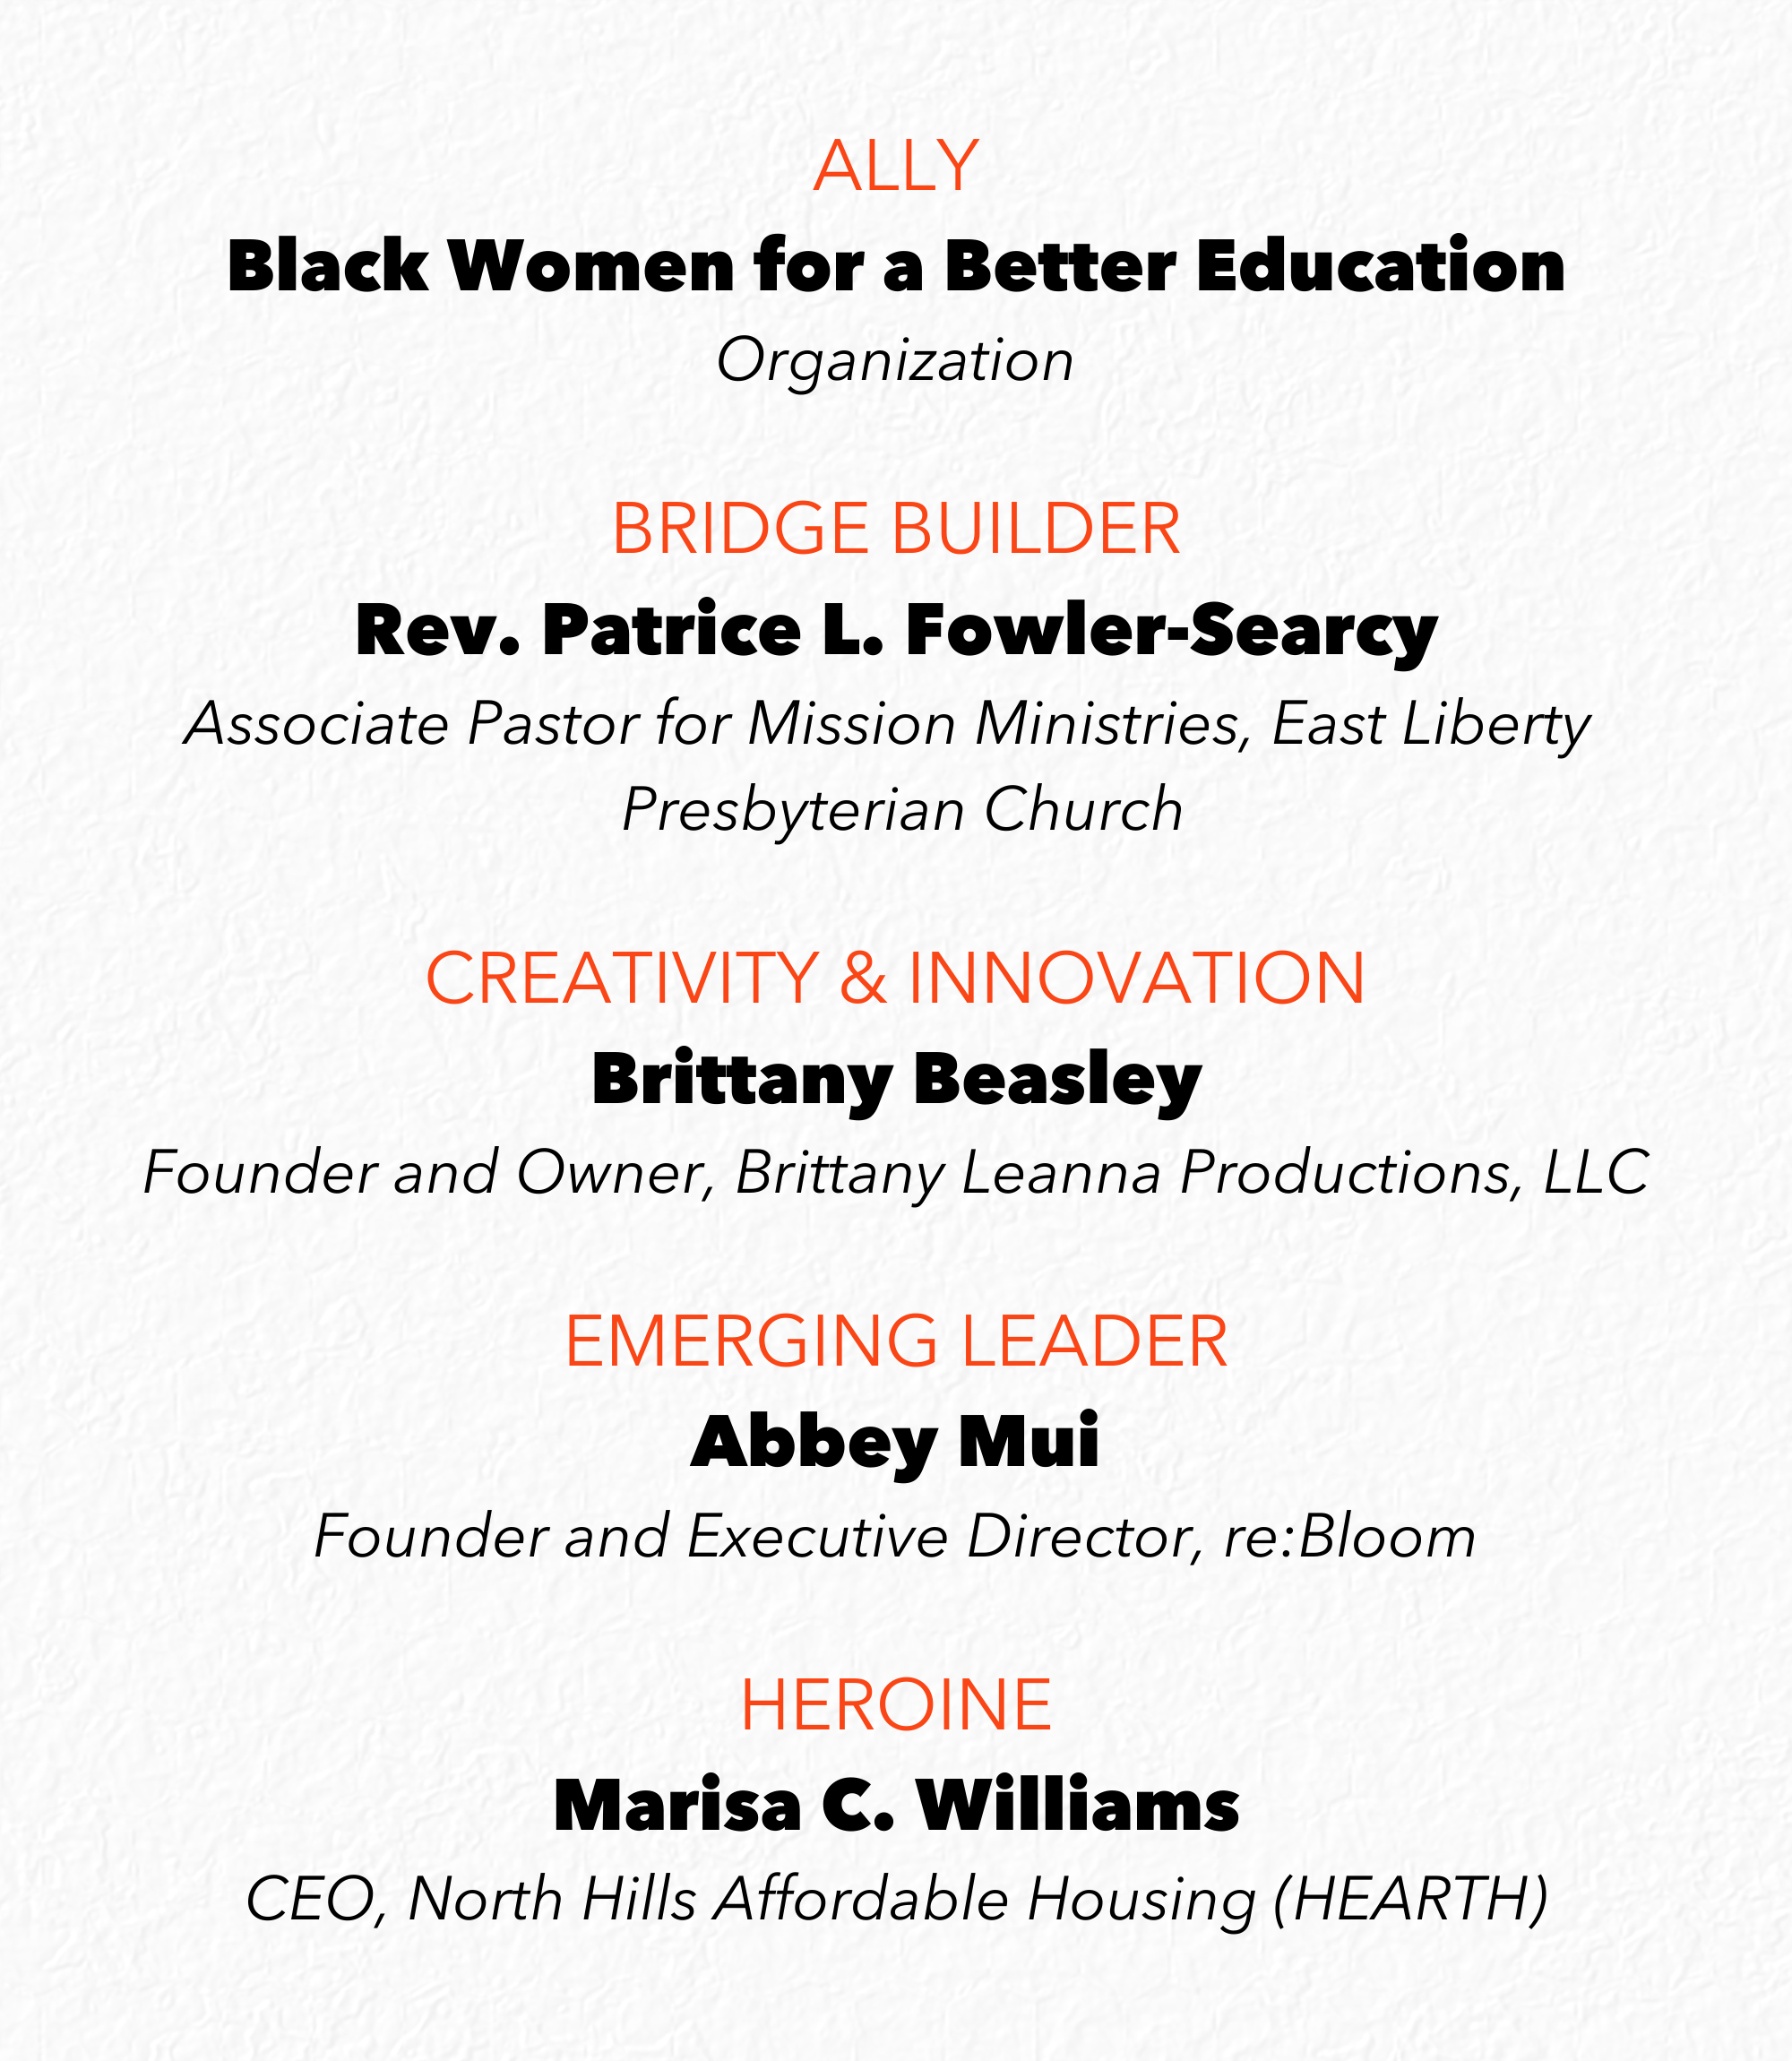 Ally, Black Women for a Better Education, Organization, Bridge Builder, Rev. Patrice L. Fowler-Searcy, Associate Pastor for Mission Ministries, East Liberty Presbyterian Church, Creativity & Innovation, Brittany Beasley, Founder and Owner, Brittany Leanna Productions, LLC, Emerging Leader, Abbey Mui, Founder and Executive Director, re:Bloom, Heroine, Marisa C. Williams, CEO, North Hills Affordable Housing (HEARTH)